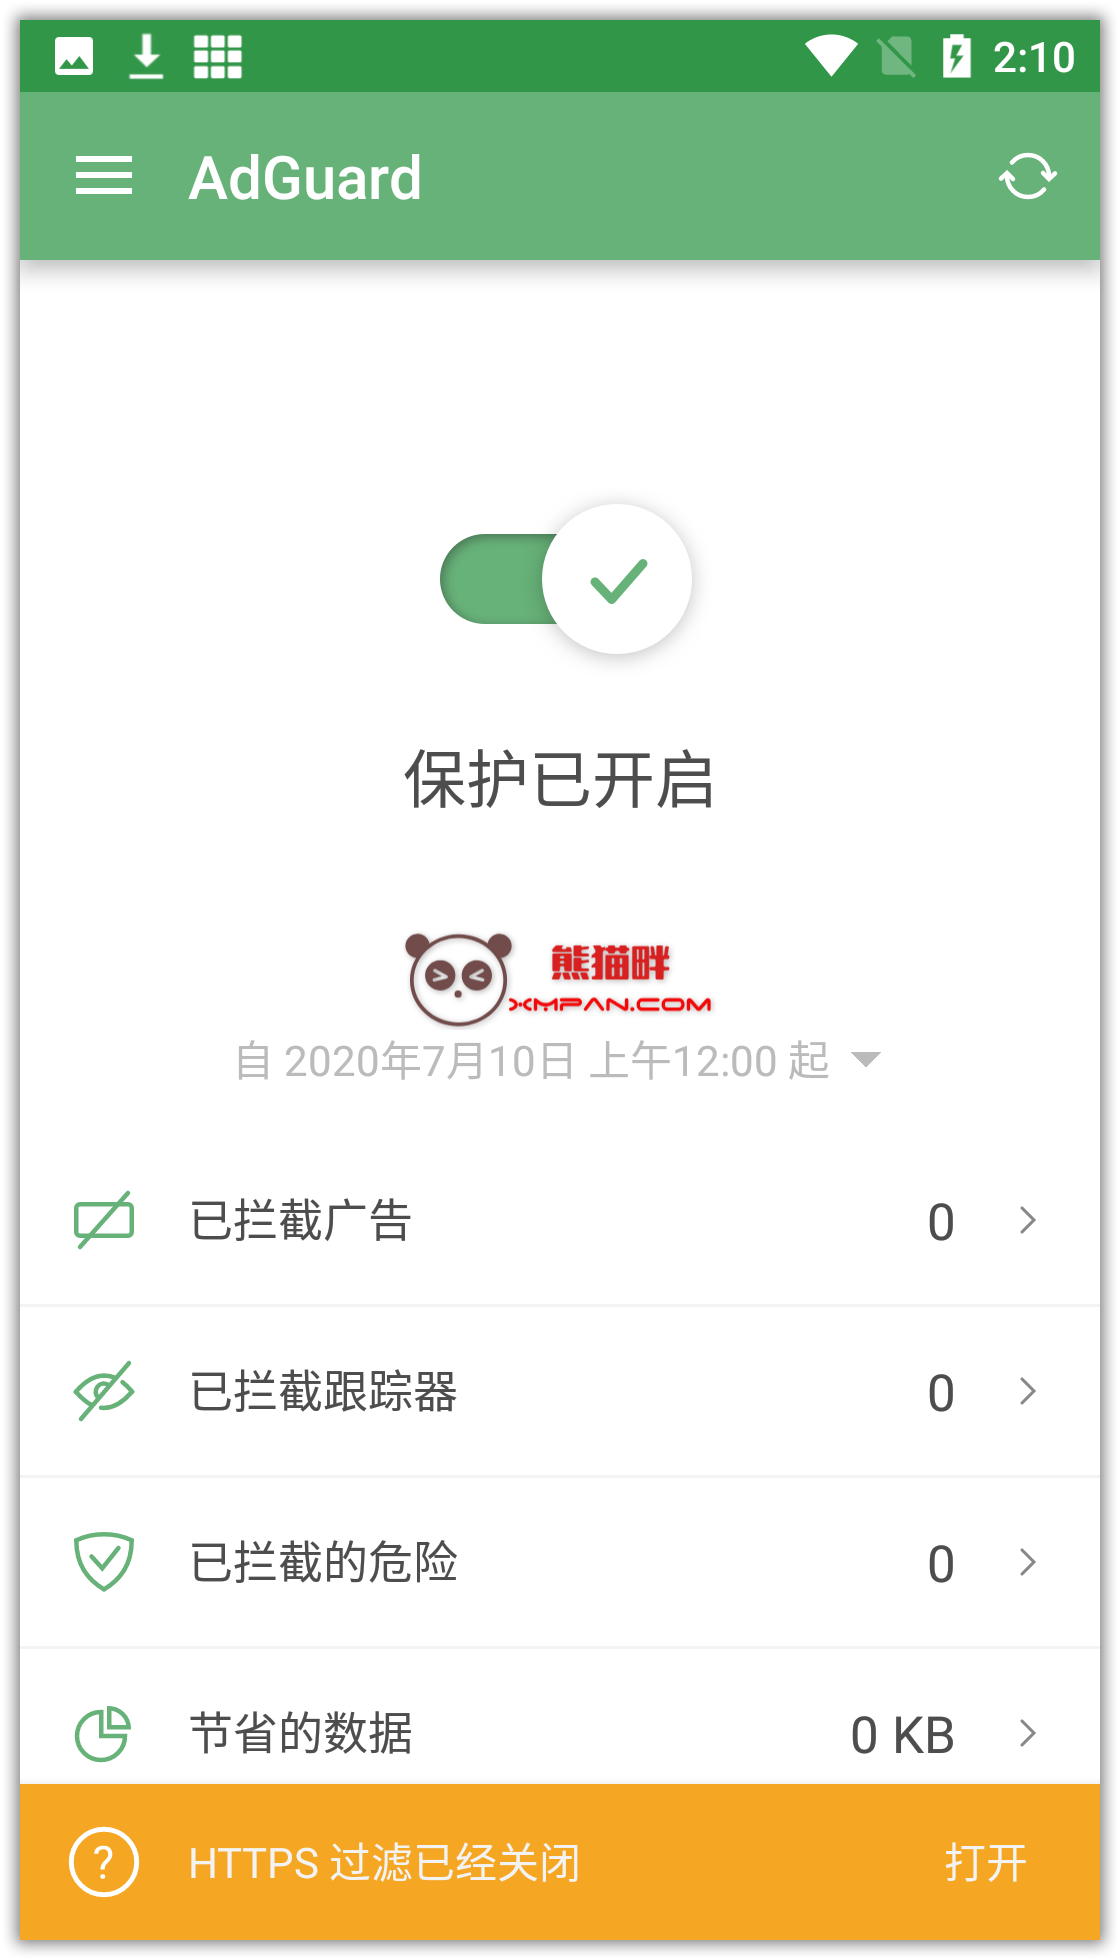 AdGuard Premium v3.5.29 for Android广告拦截器绿色版